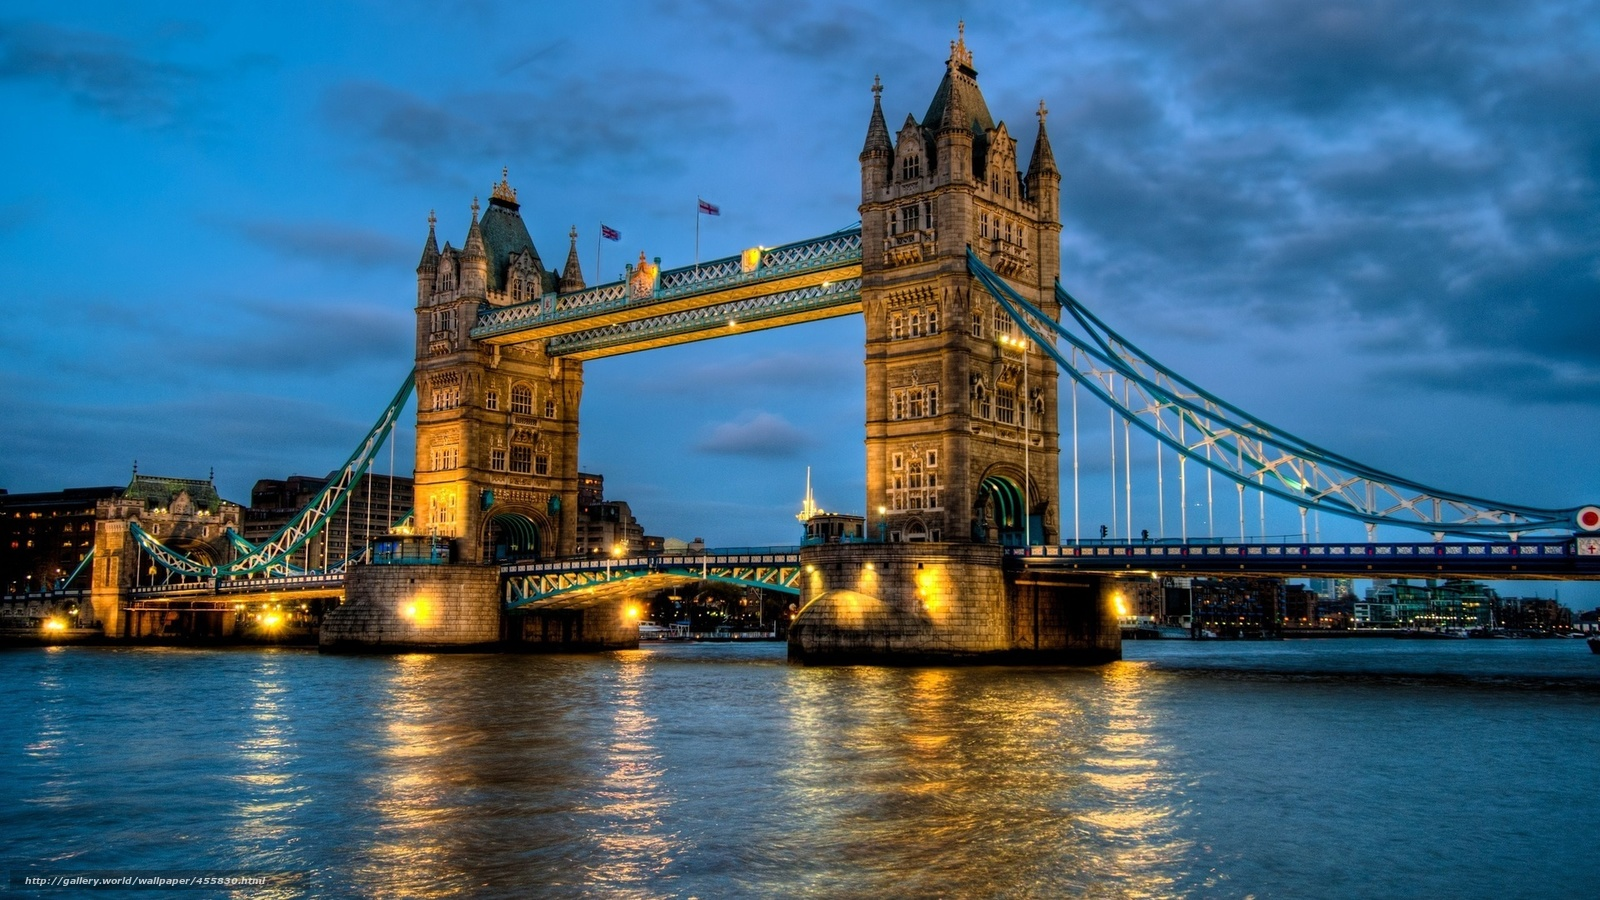 wallpaper London  uk  tower bridge  London free desktop wallpaper    London Bridge At Night Wallpaper